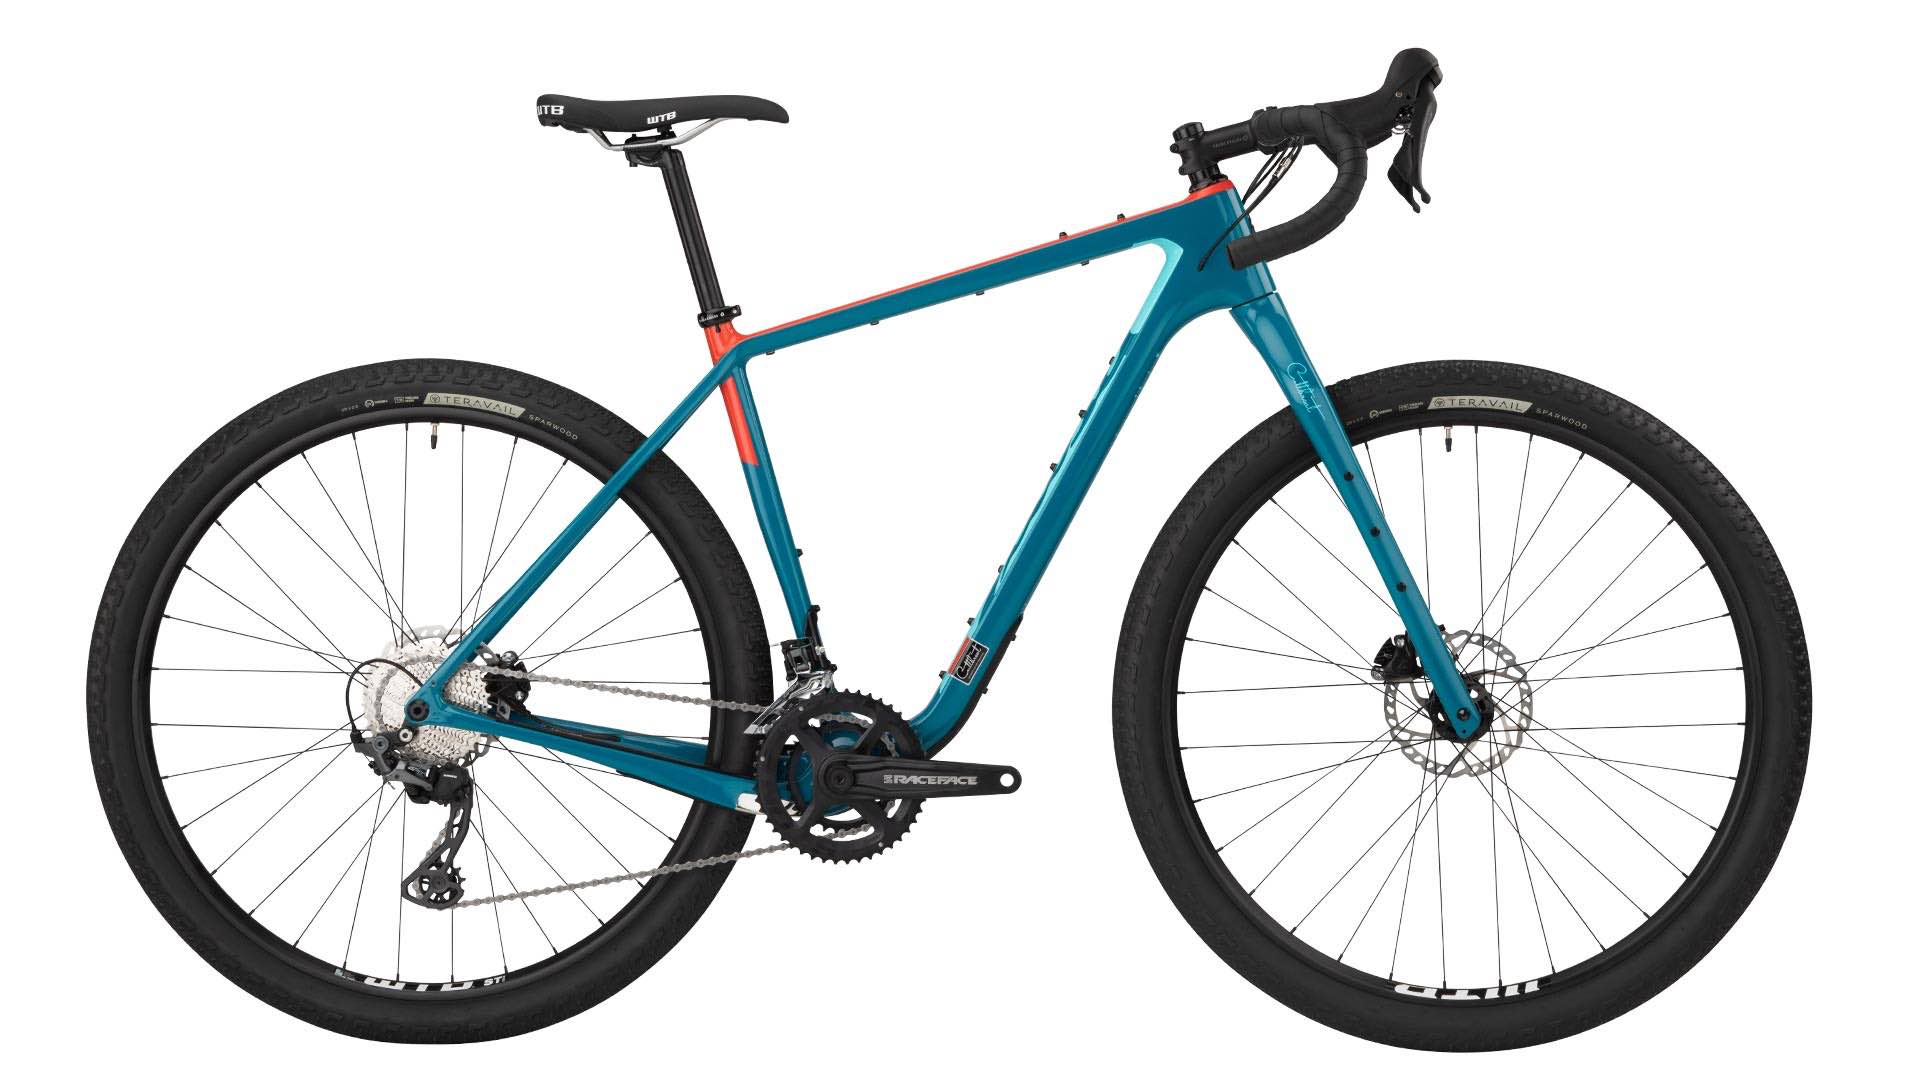 Stock image of a Salsa Cutthroat GRX 600 in teal/orange